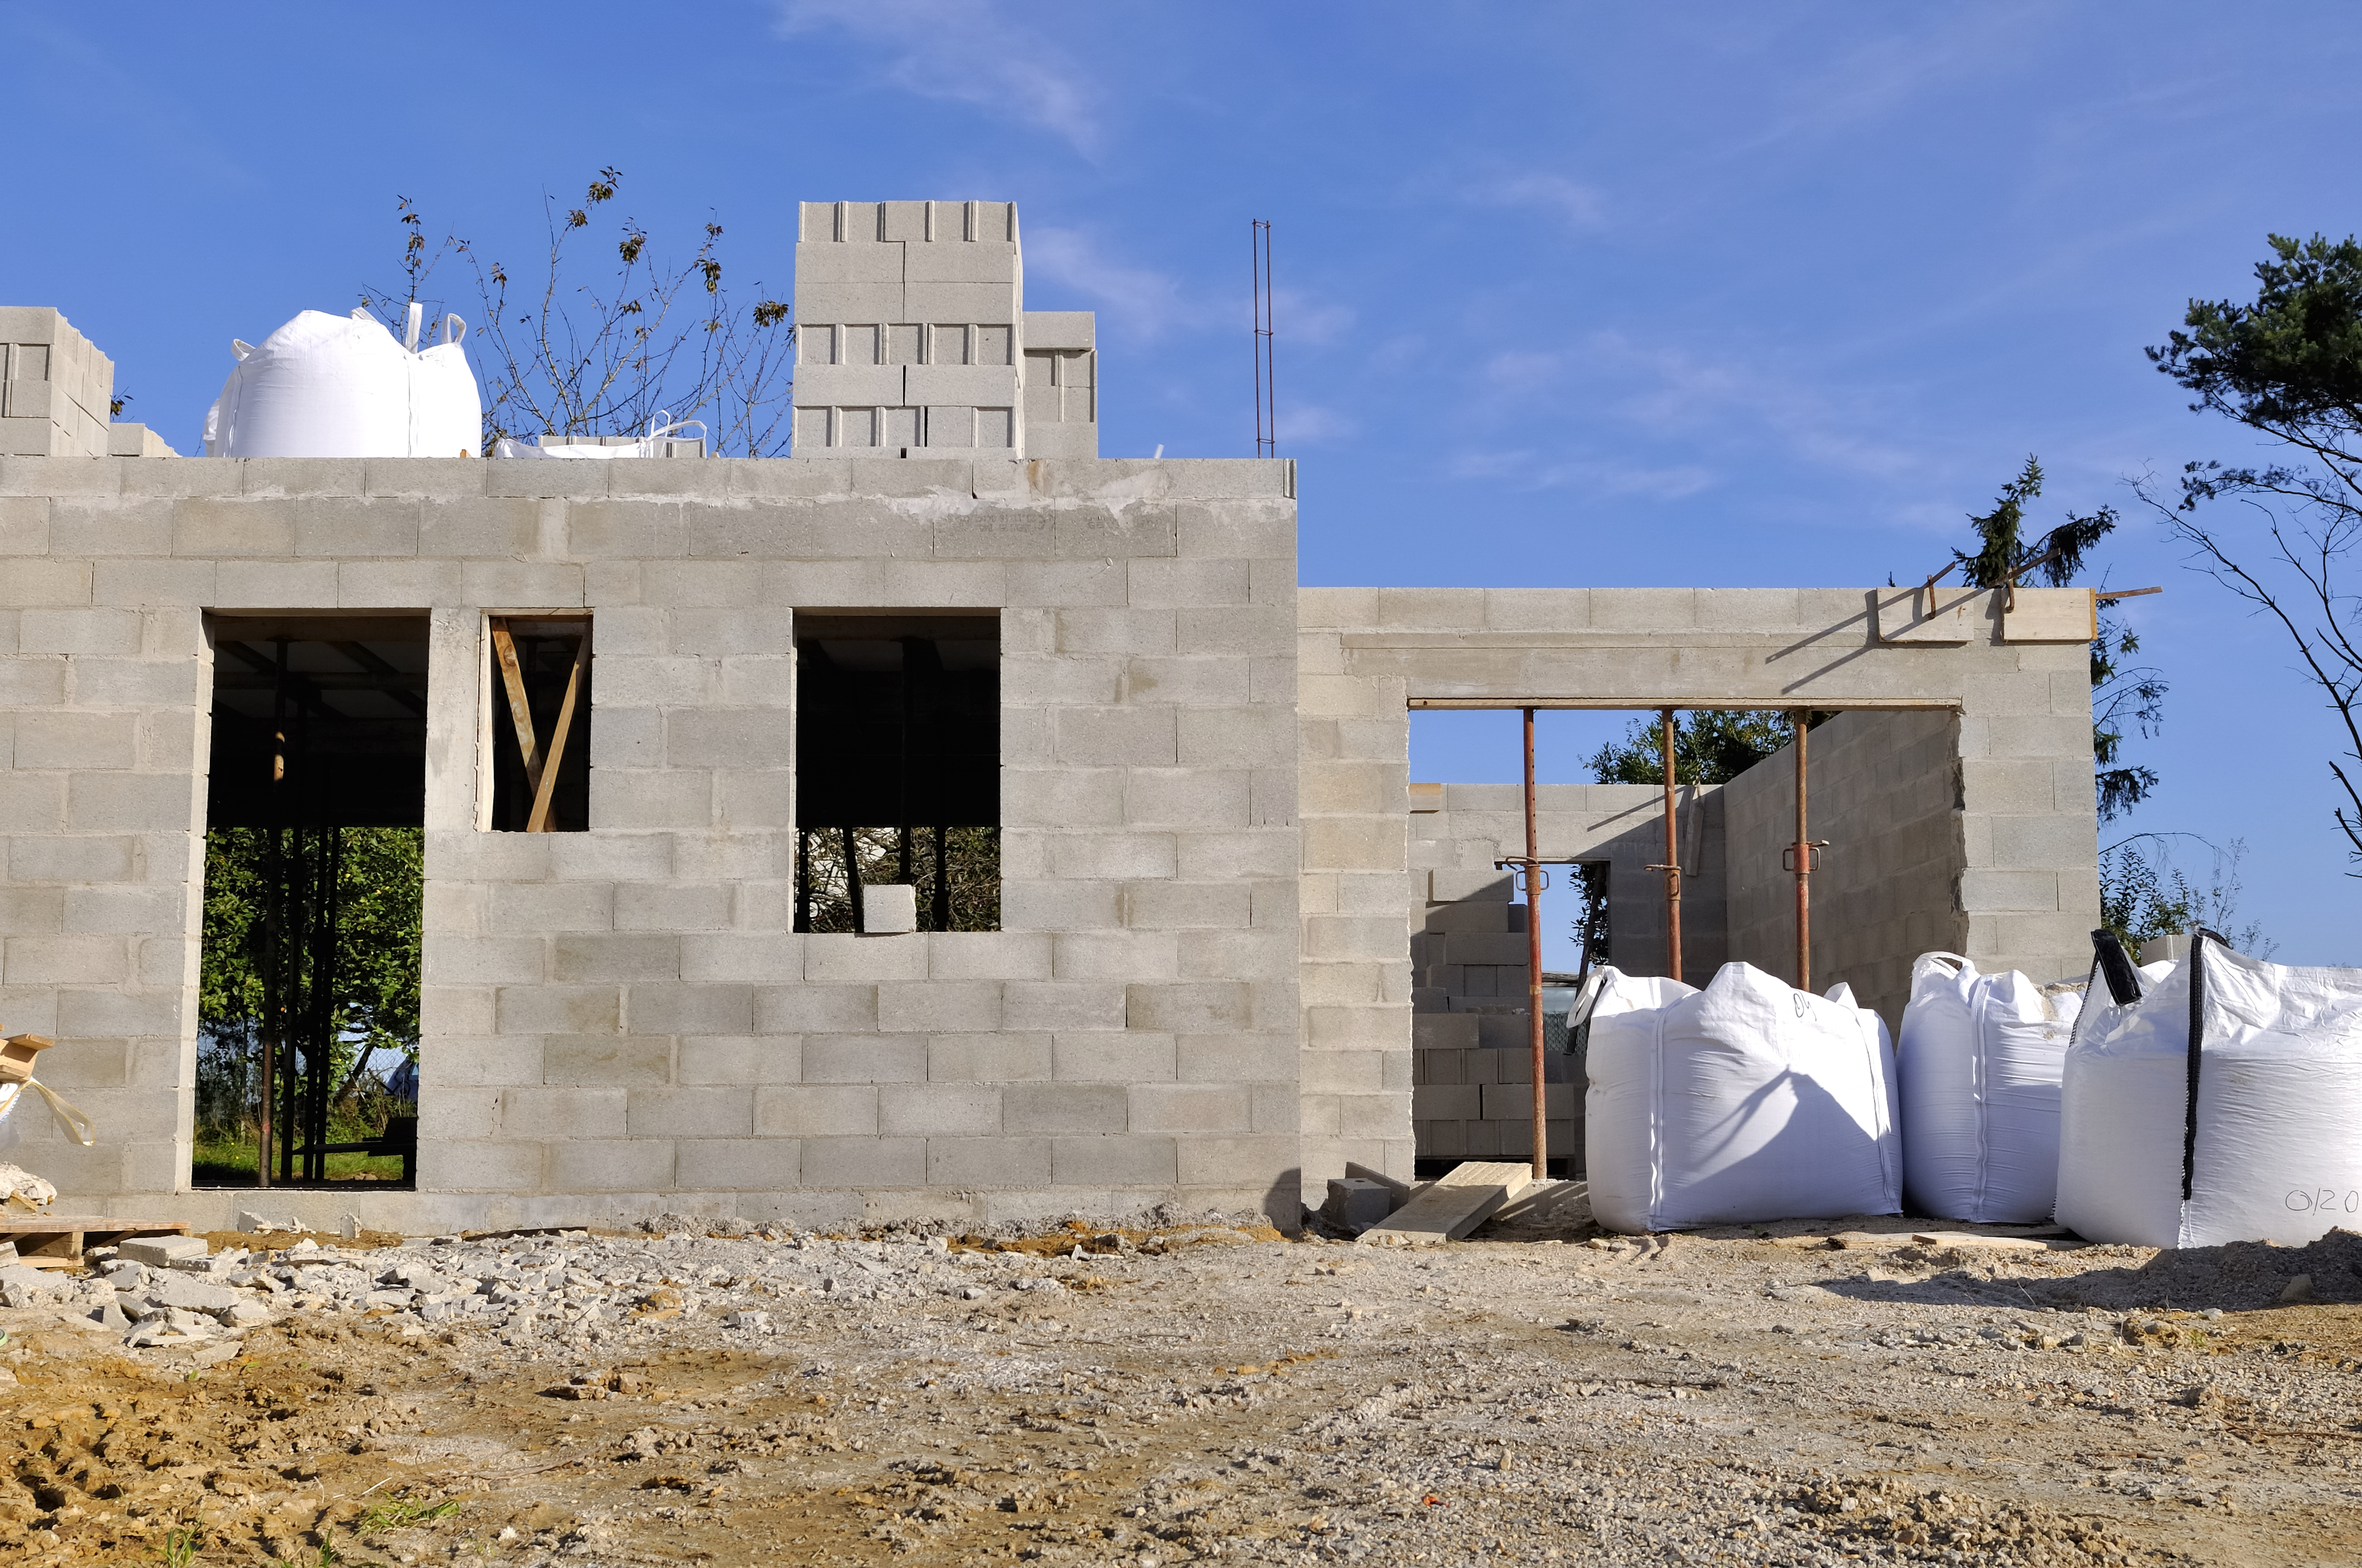 The Pros & Cons of Concrete Block House Construction | Home Guides